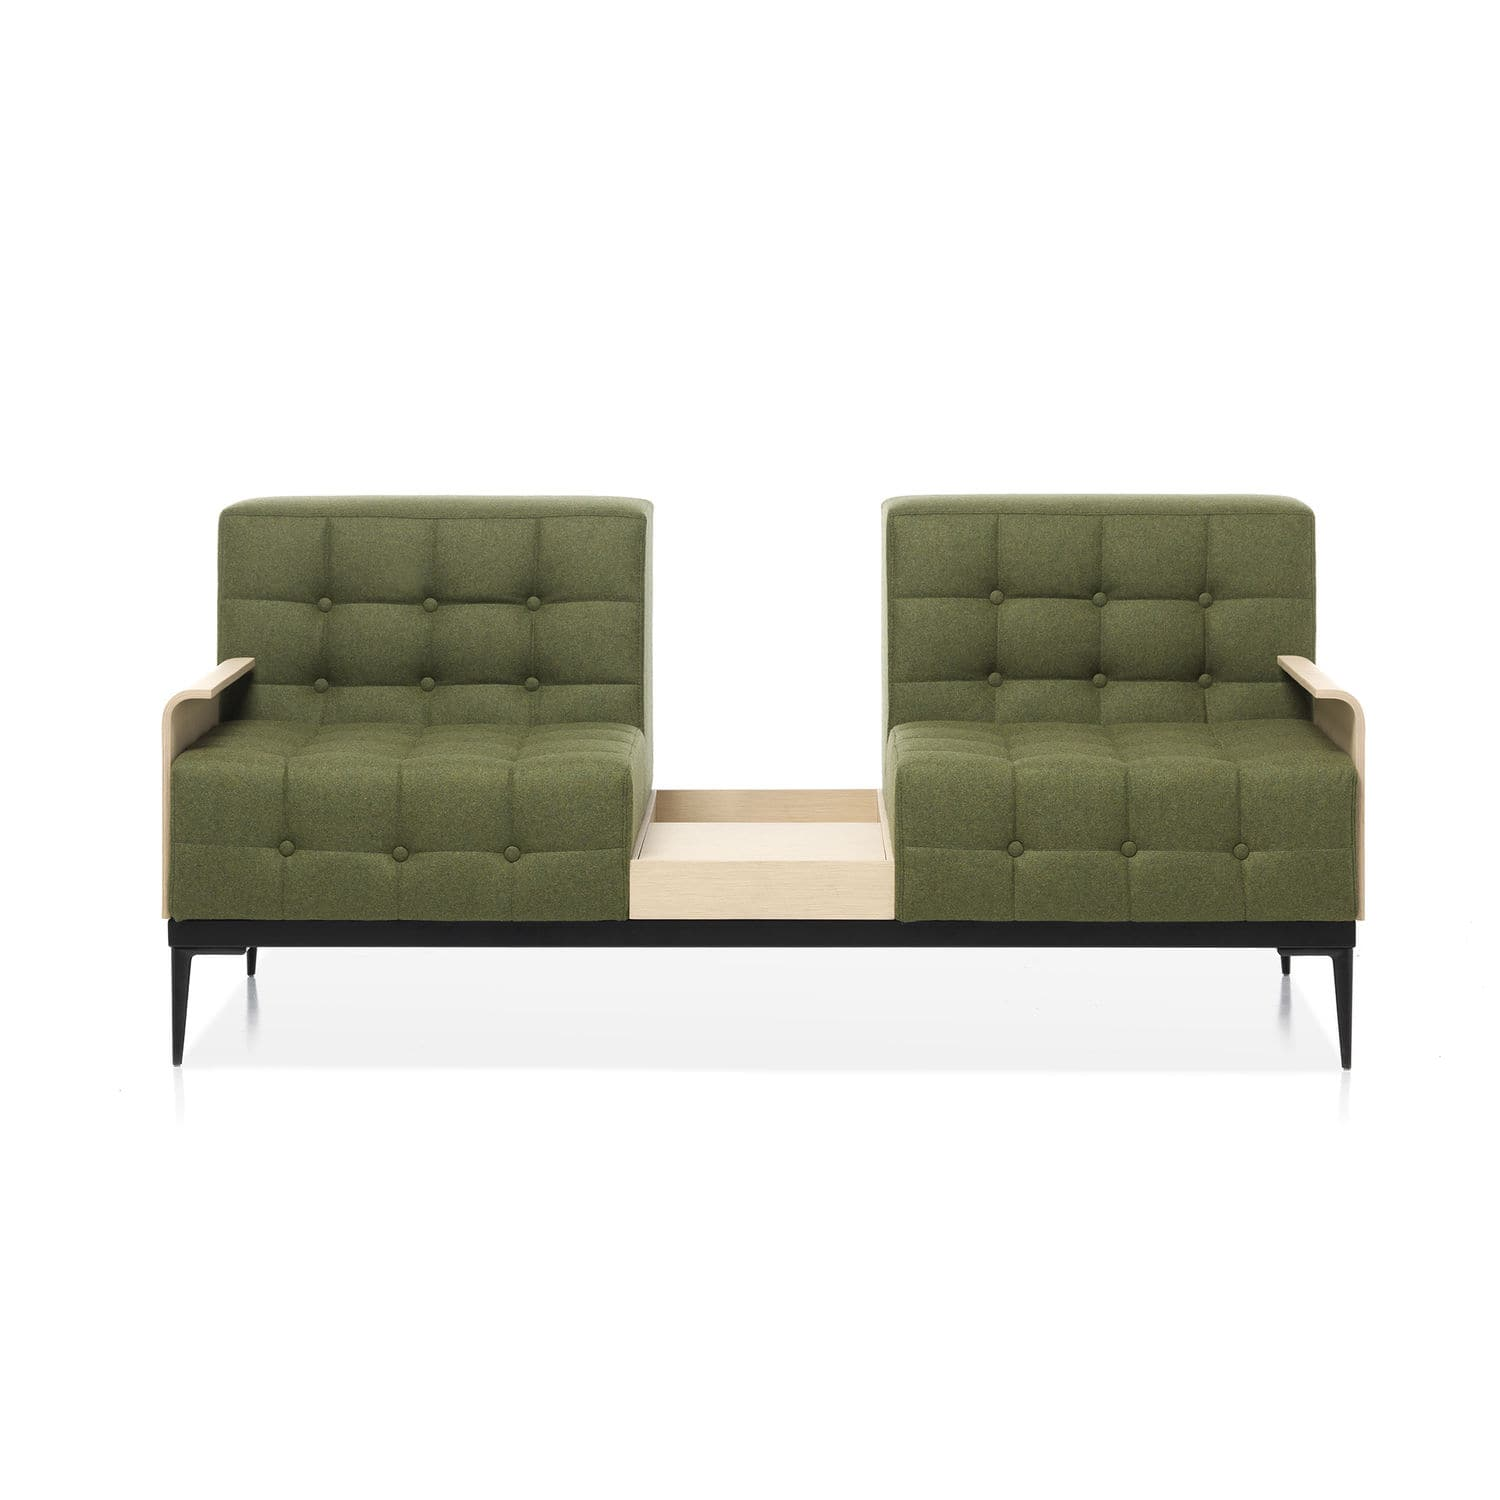 Contemporary sofa / fabric / metal / commercial - FELICITY by MM ...